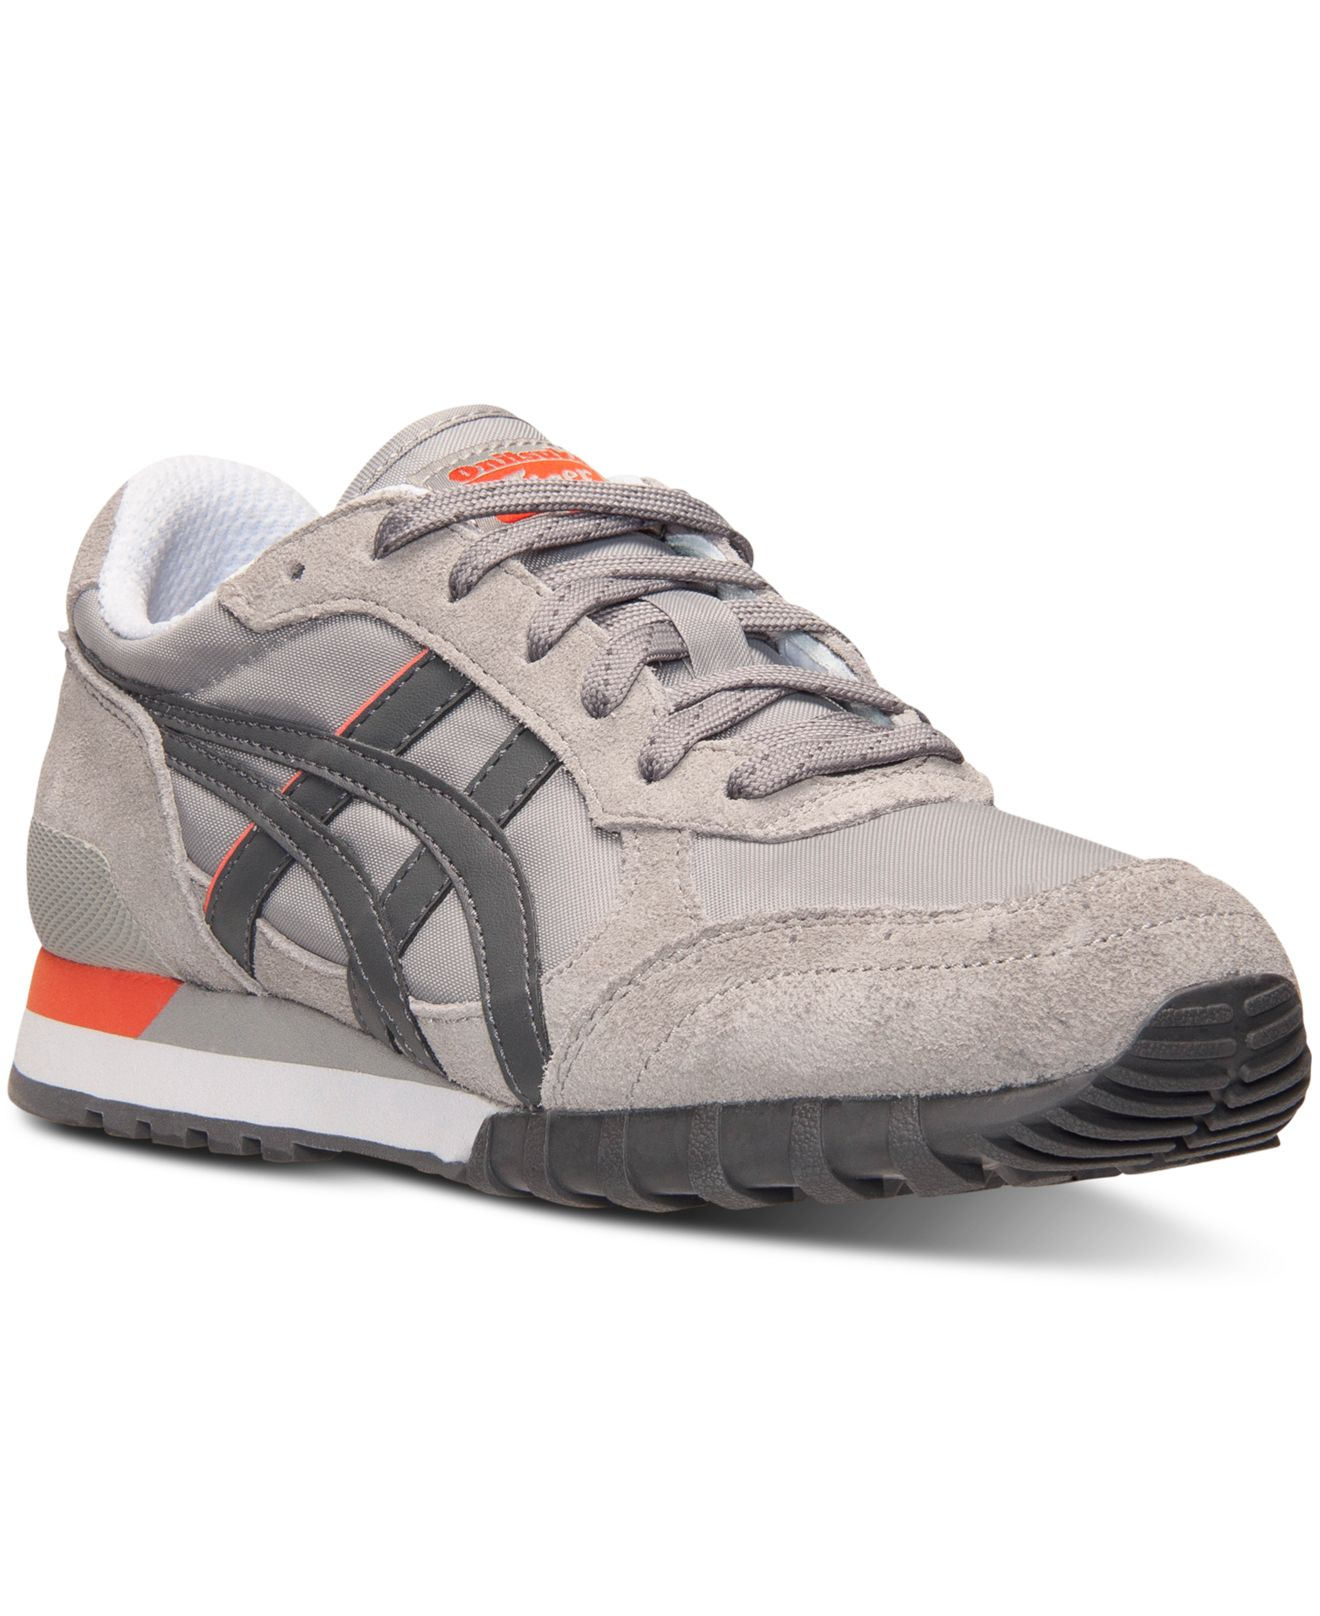 cheap eastbay outlet pay with paypal Asics Colorado sneakers deals for sale l6wep